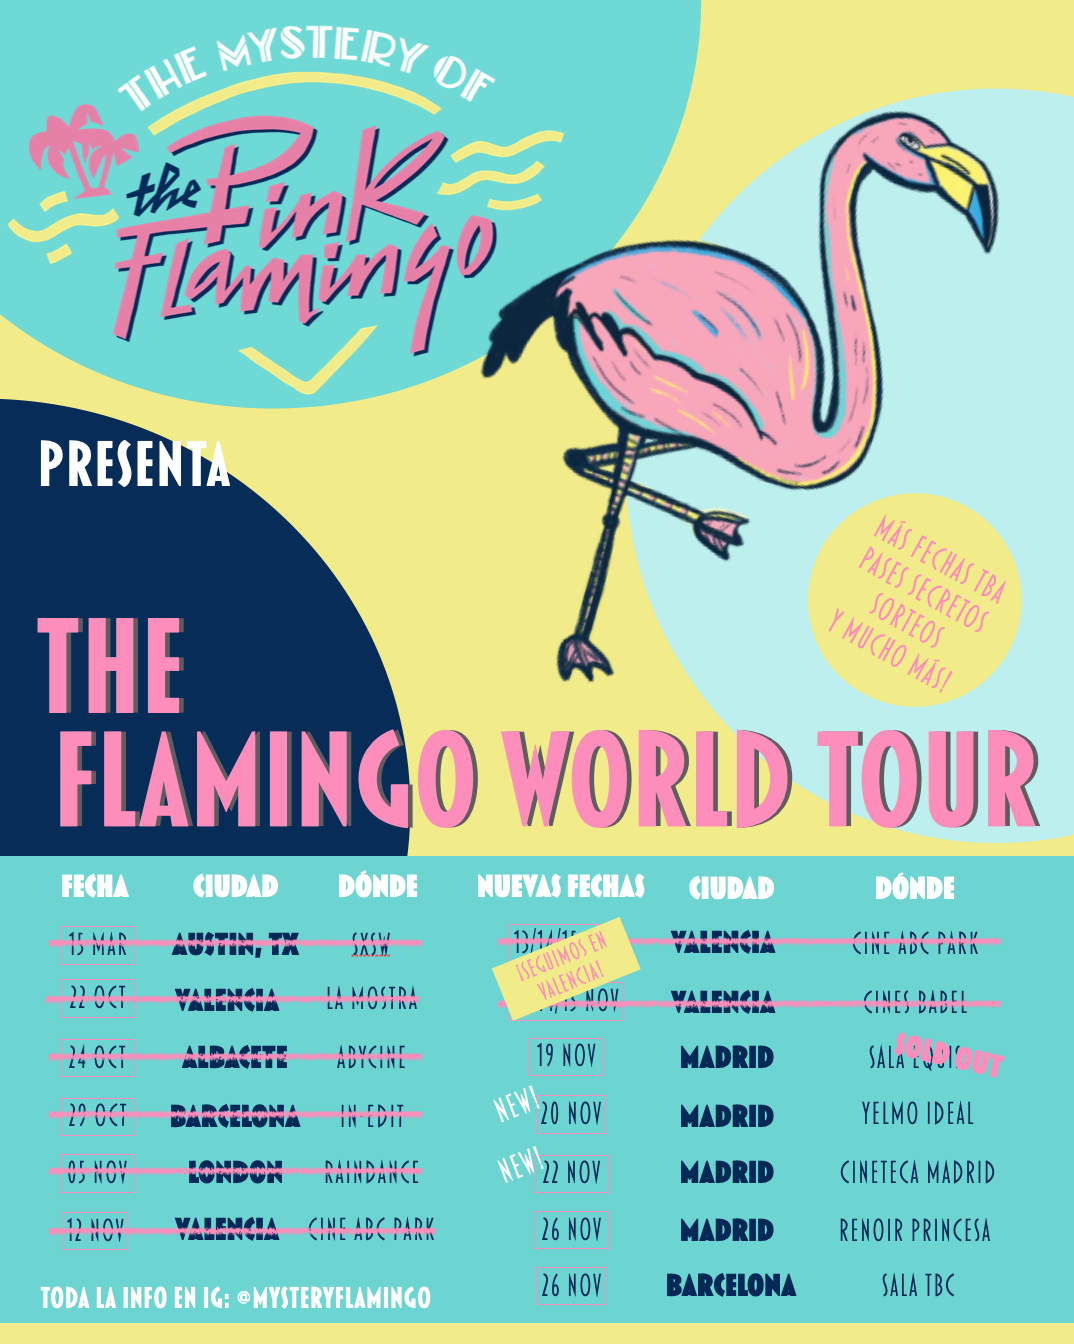 Empieza THE FLAMINGO WORLD TOUR